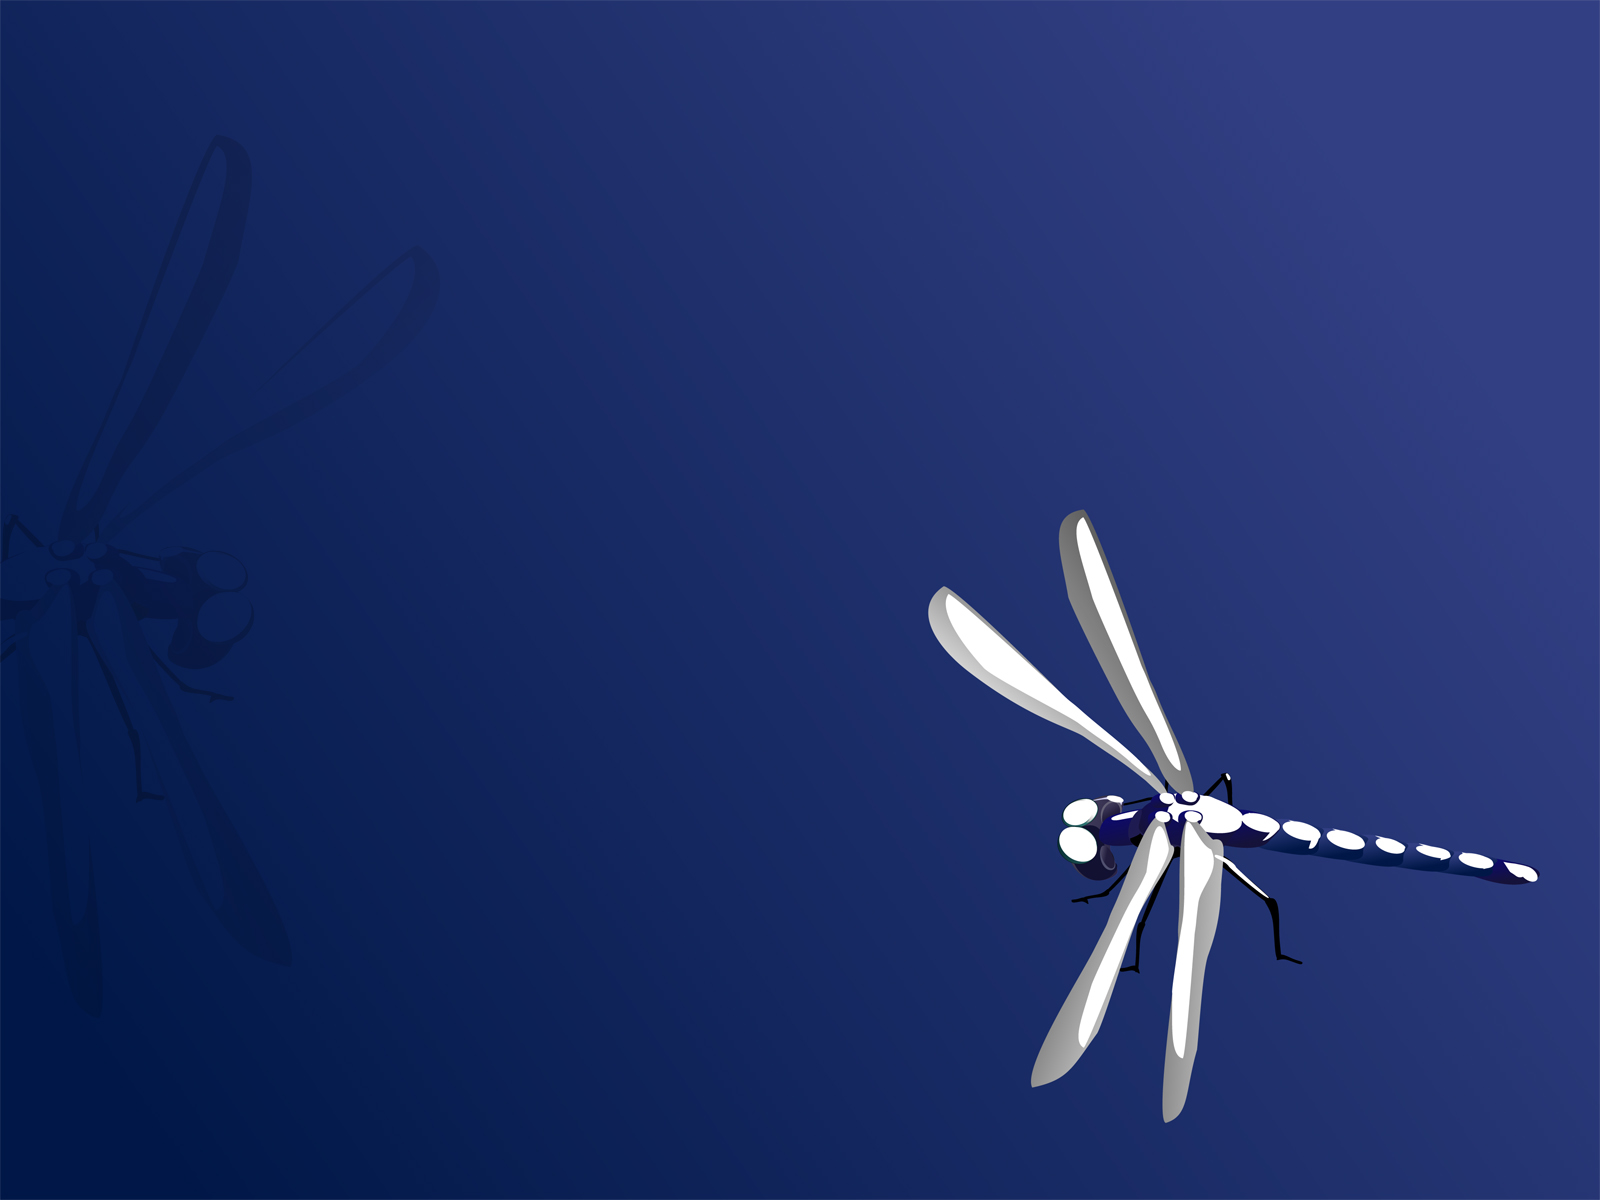 Blue Dragonfly Backgrounds